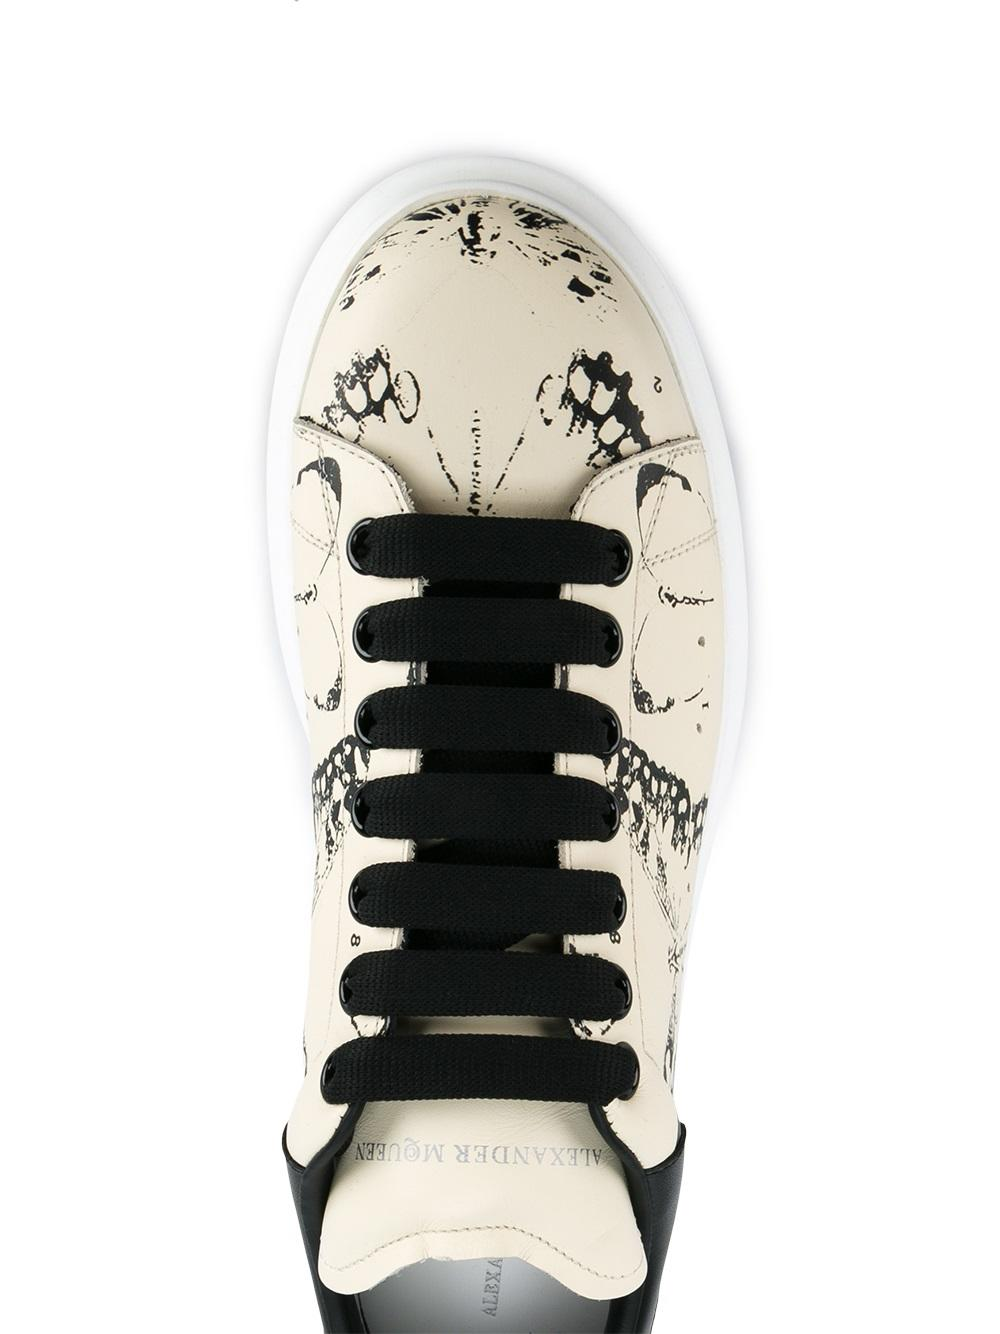 alexander-mcqueen-extended-sole-moth-print-sneakers-4